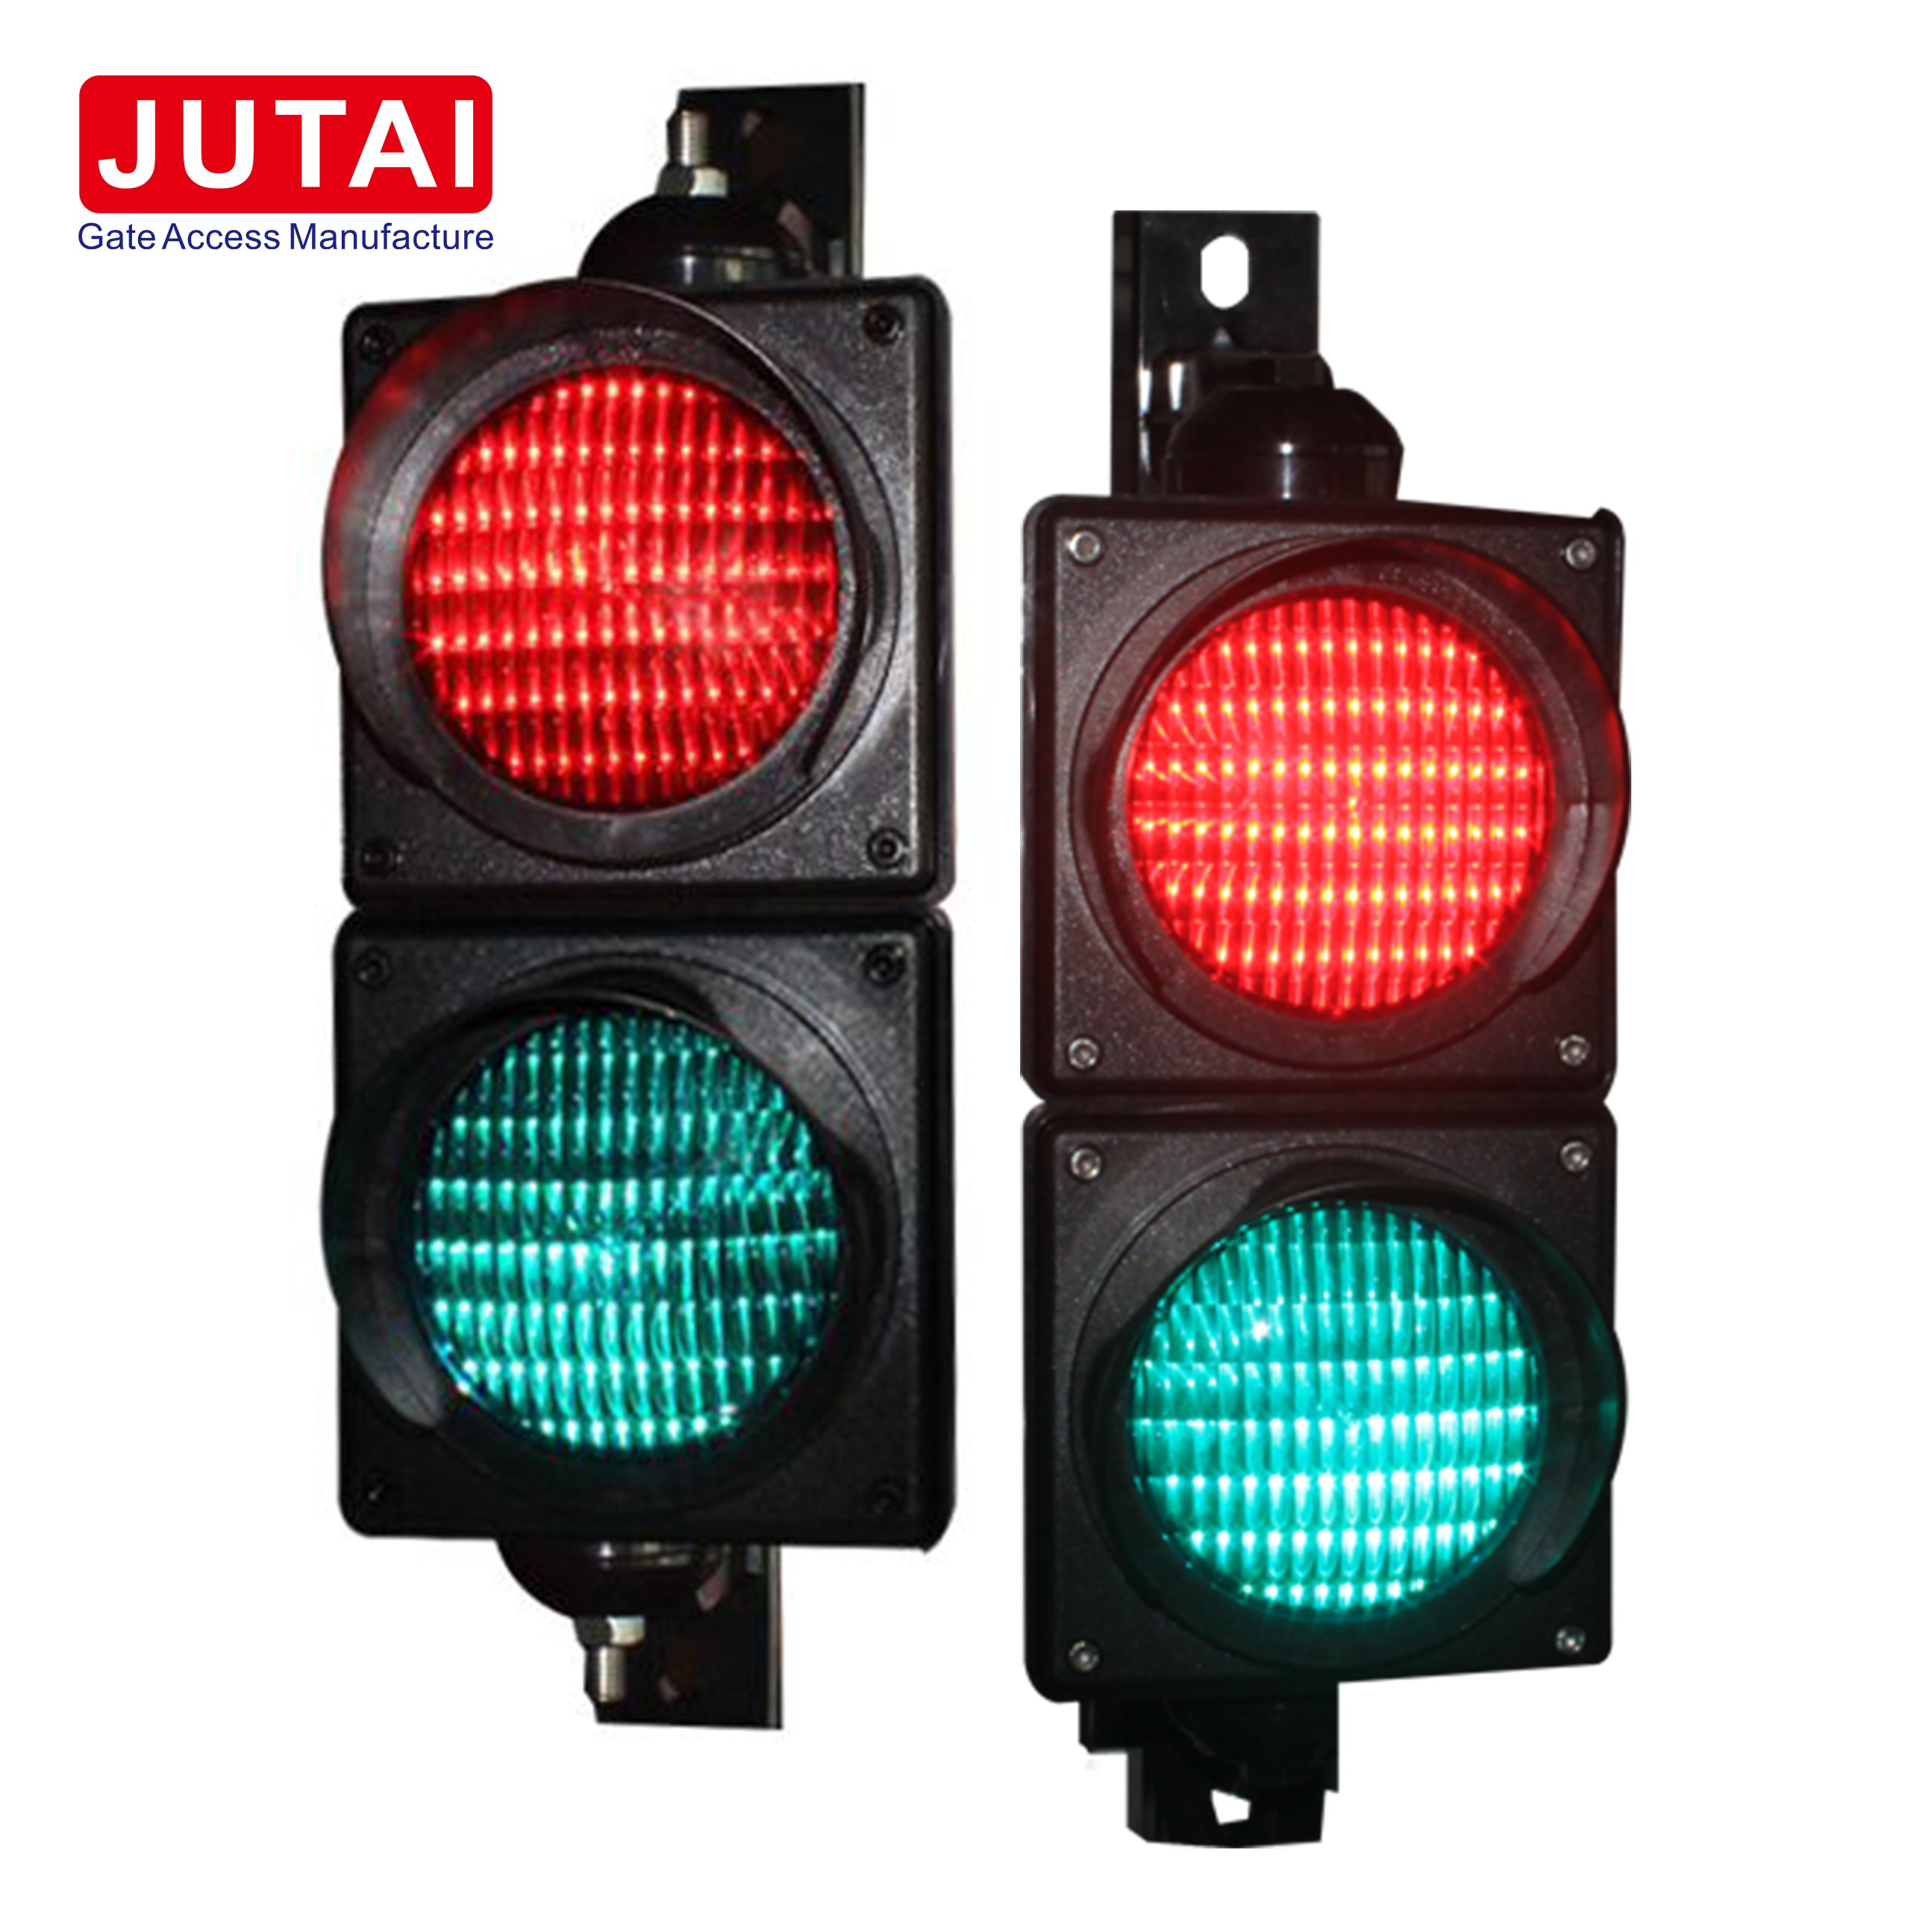 100mm Traffic Light For Parking Lot Vehicle Access Gate Operator Control